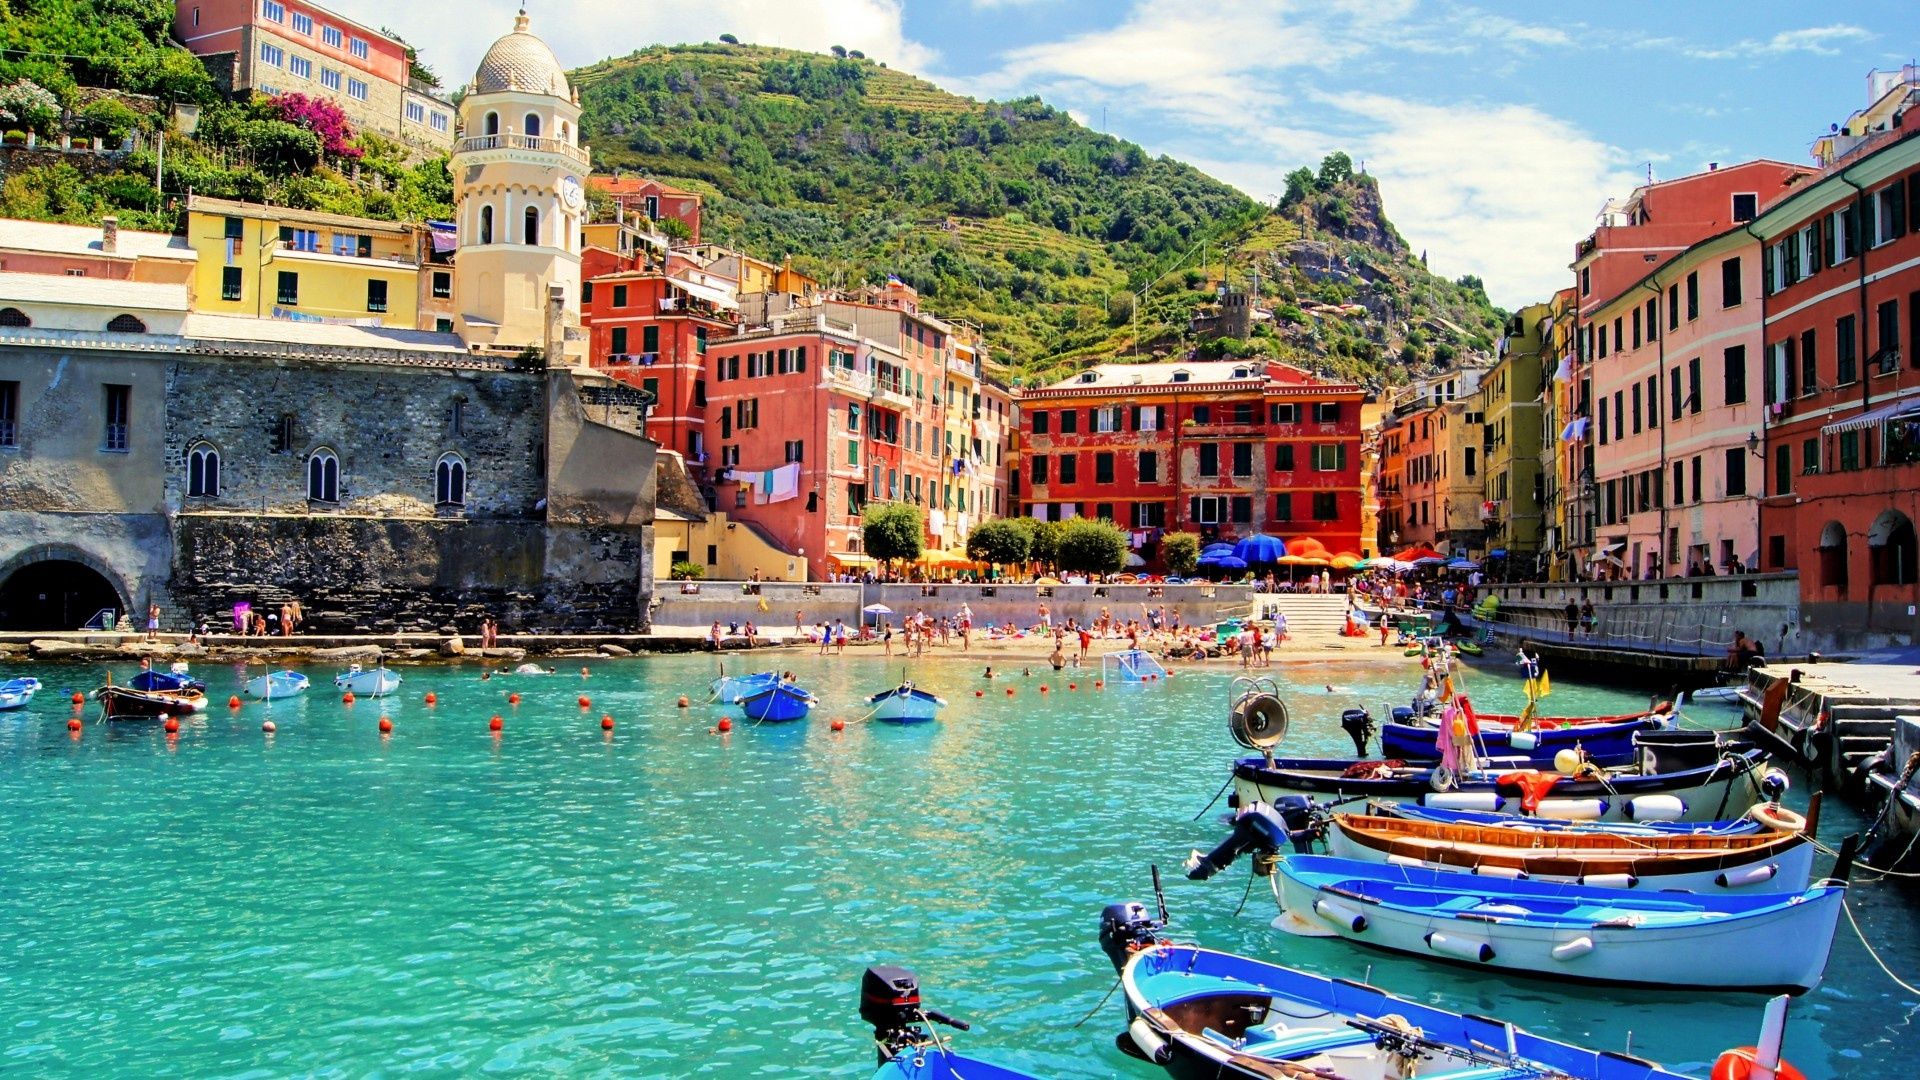 8 Italian Riviera cities and towns you have to visit